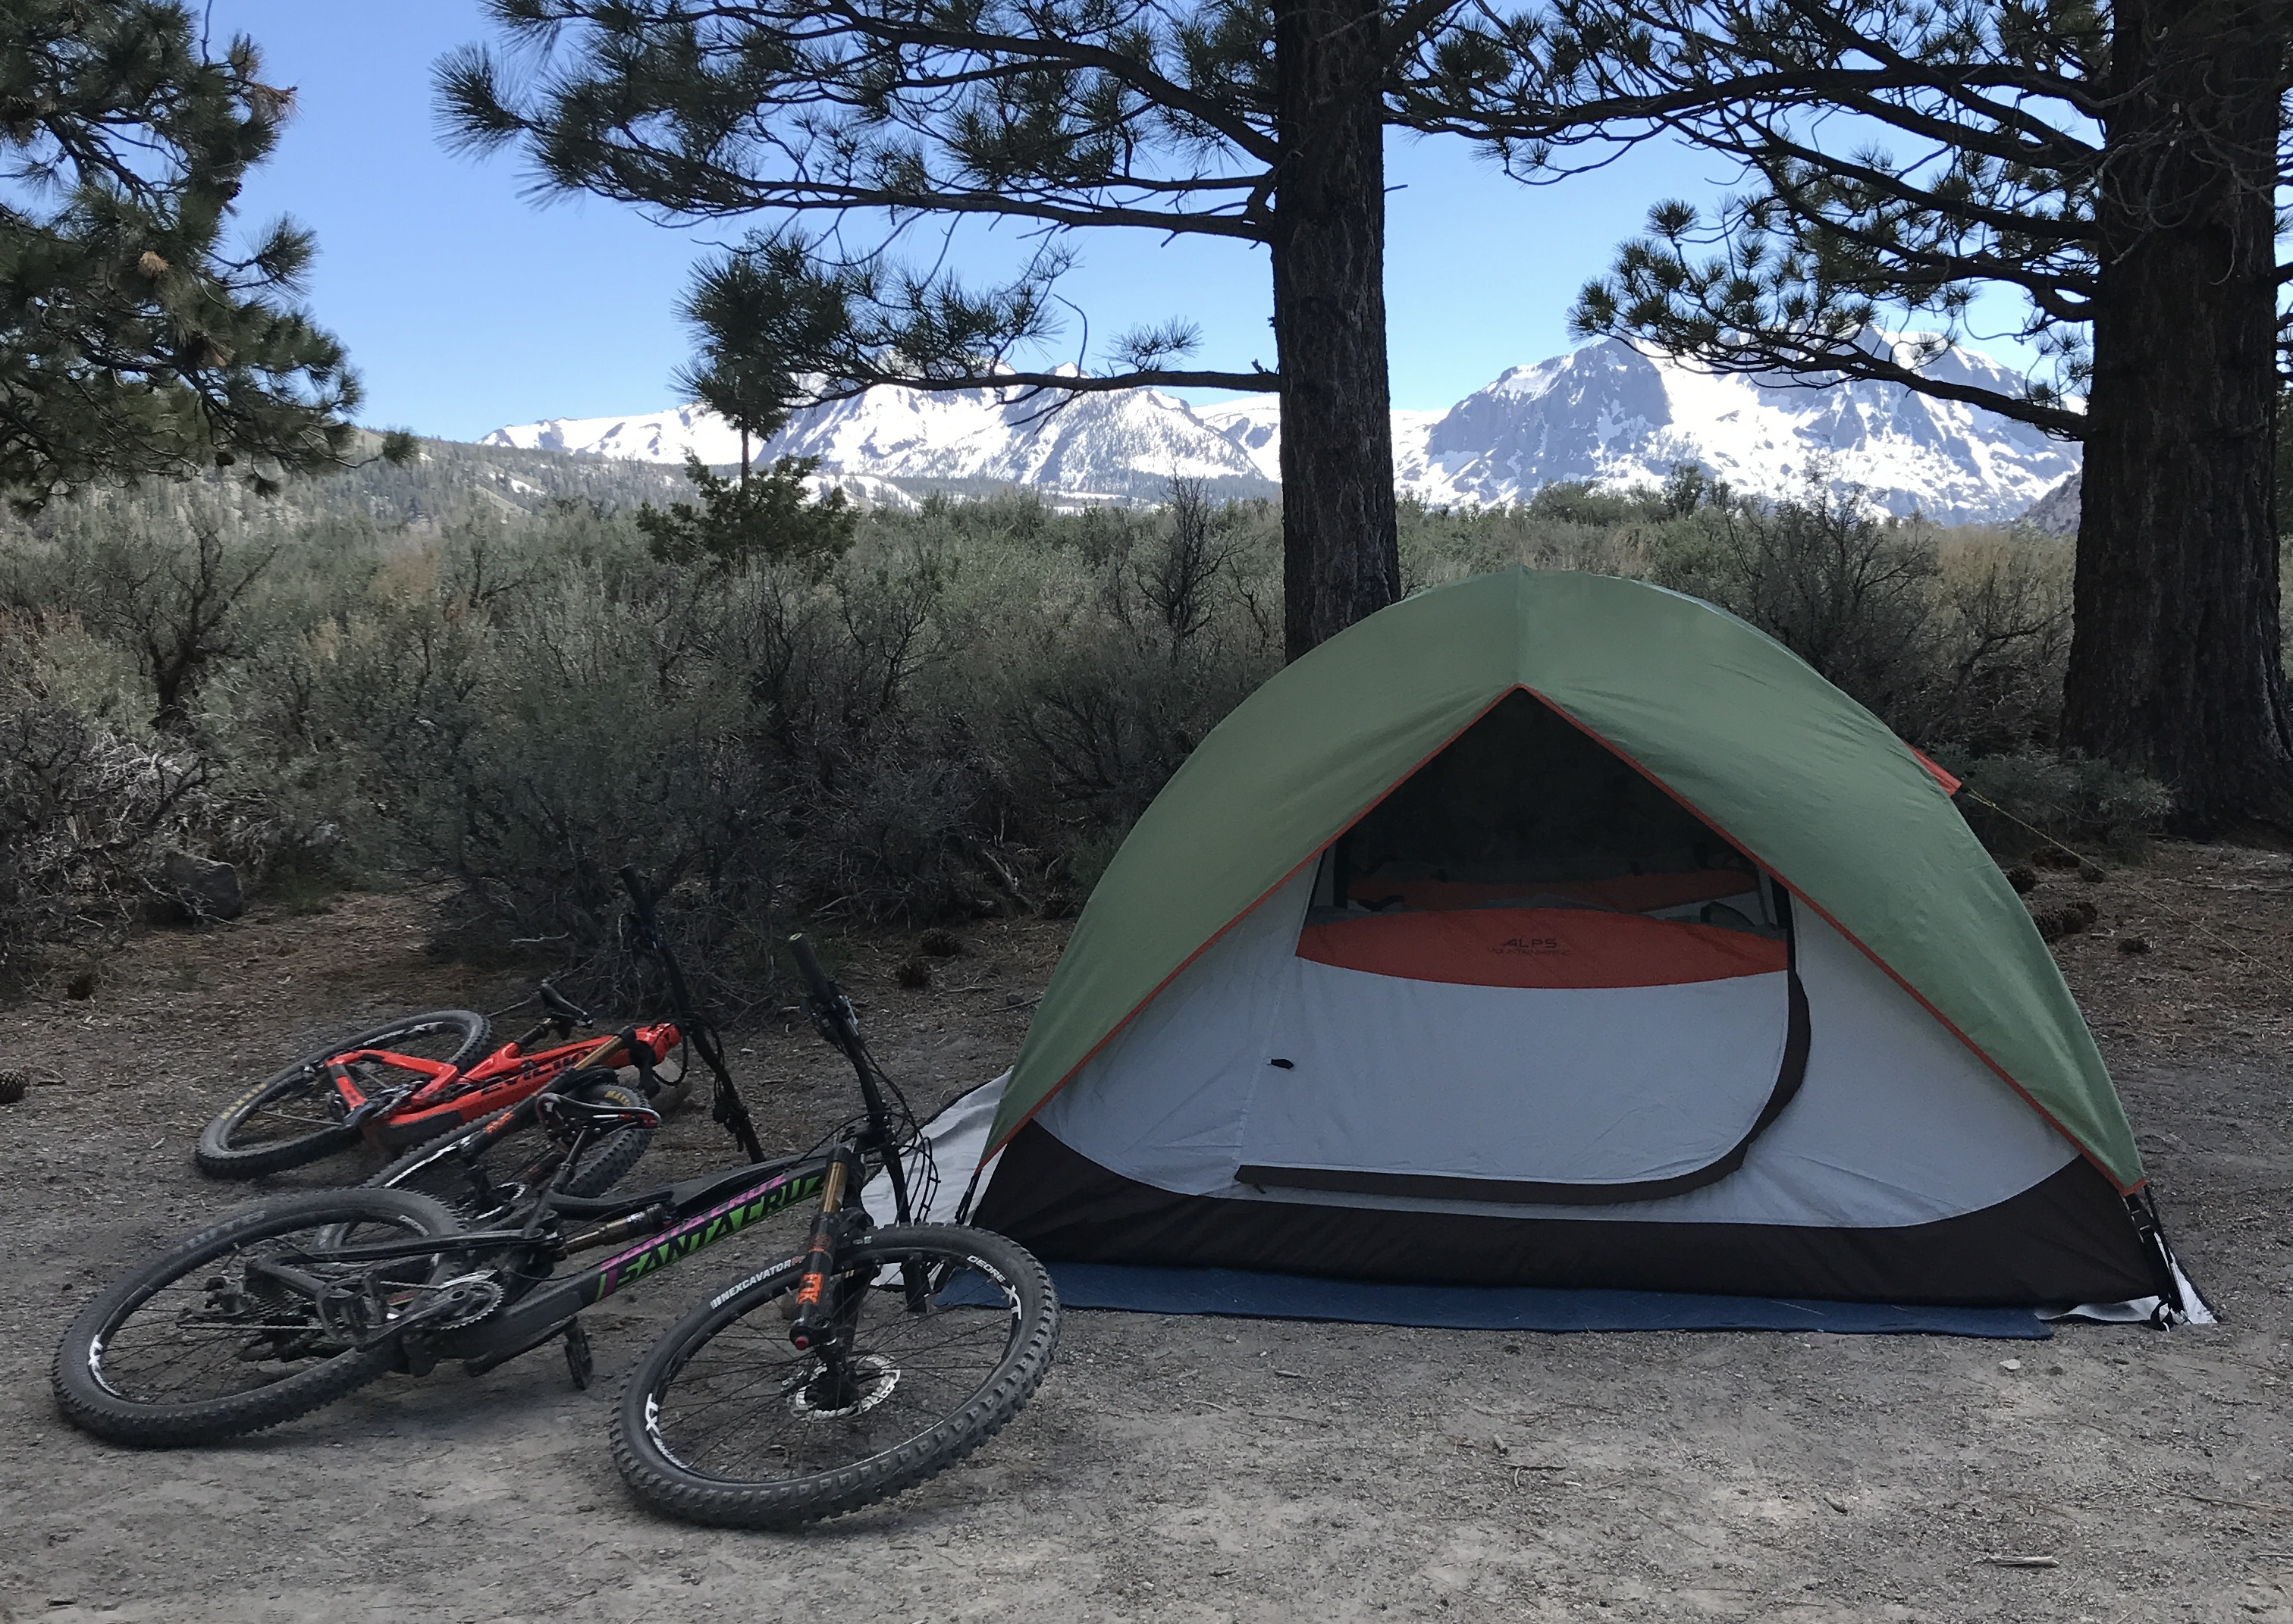 ALPS Mountaineering Meramac Tent Review & ALPS Mountaineering Meramac 2-Person Tent Review